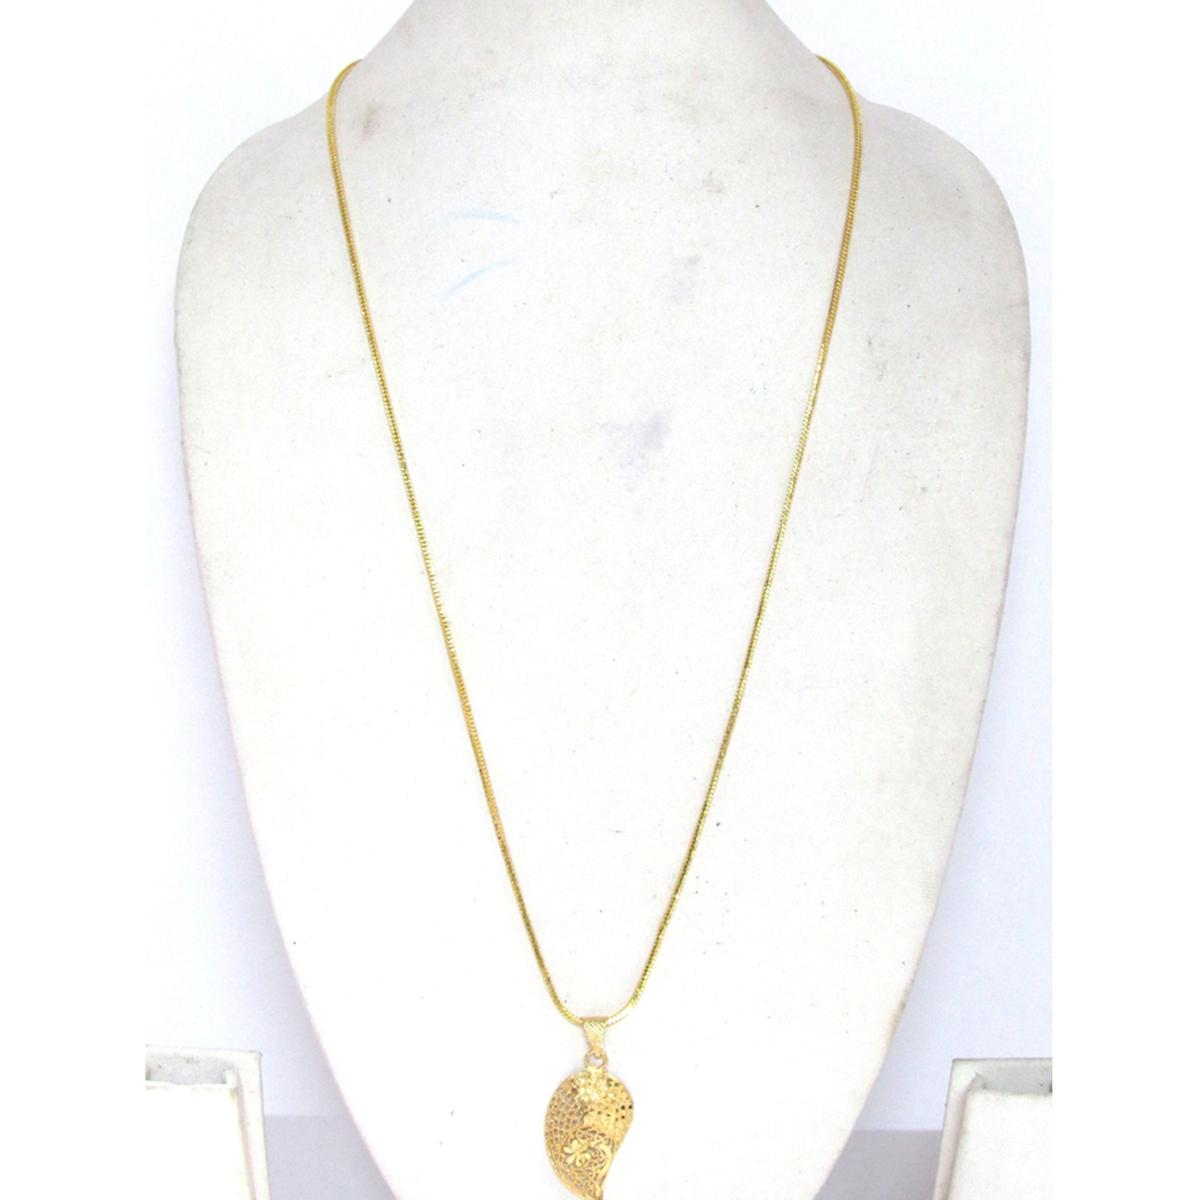 Golden Mango Pendant Chain Necklace